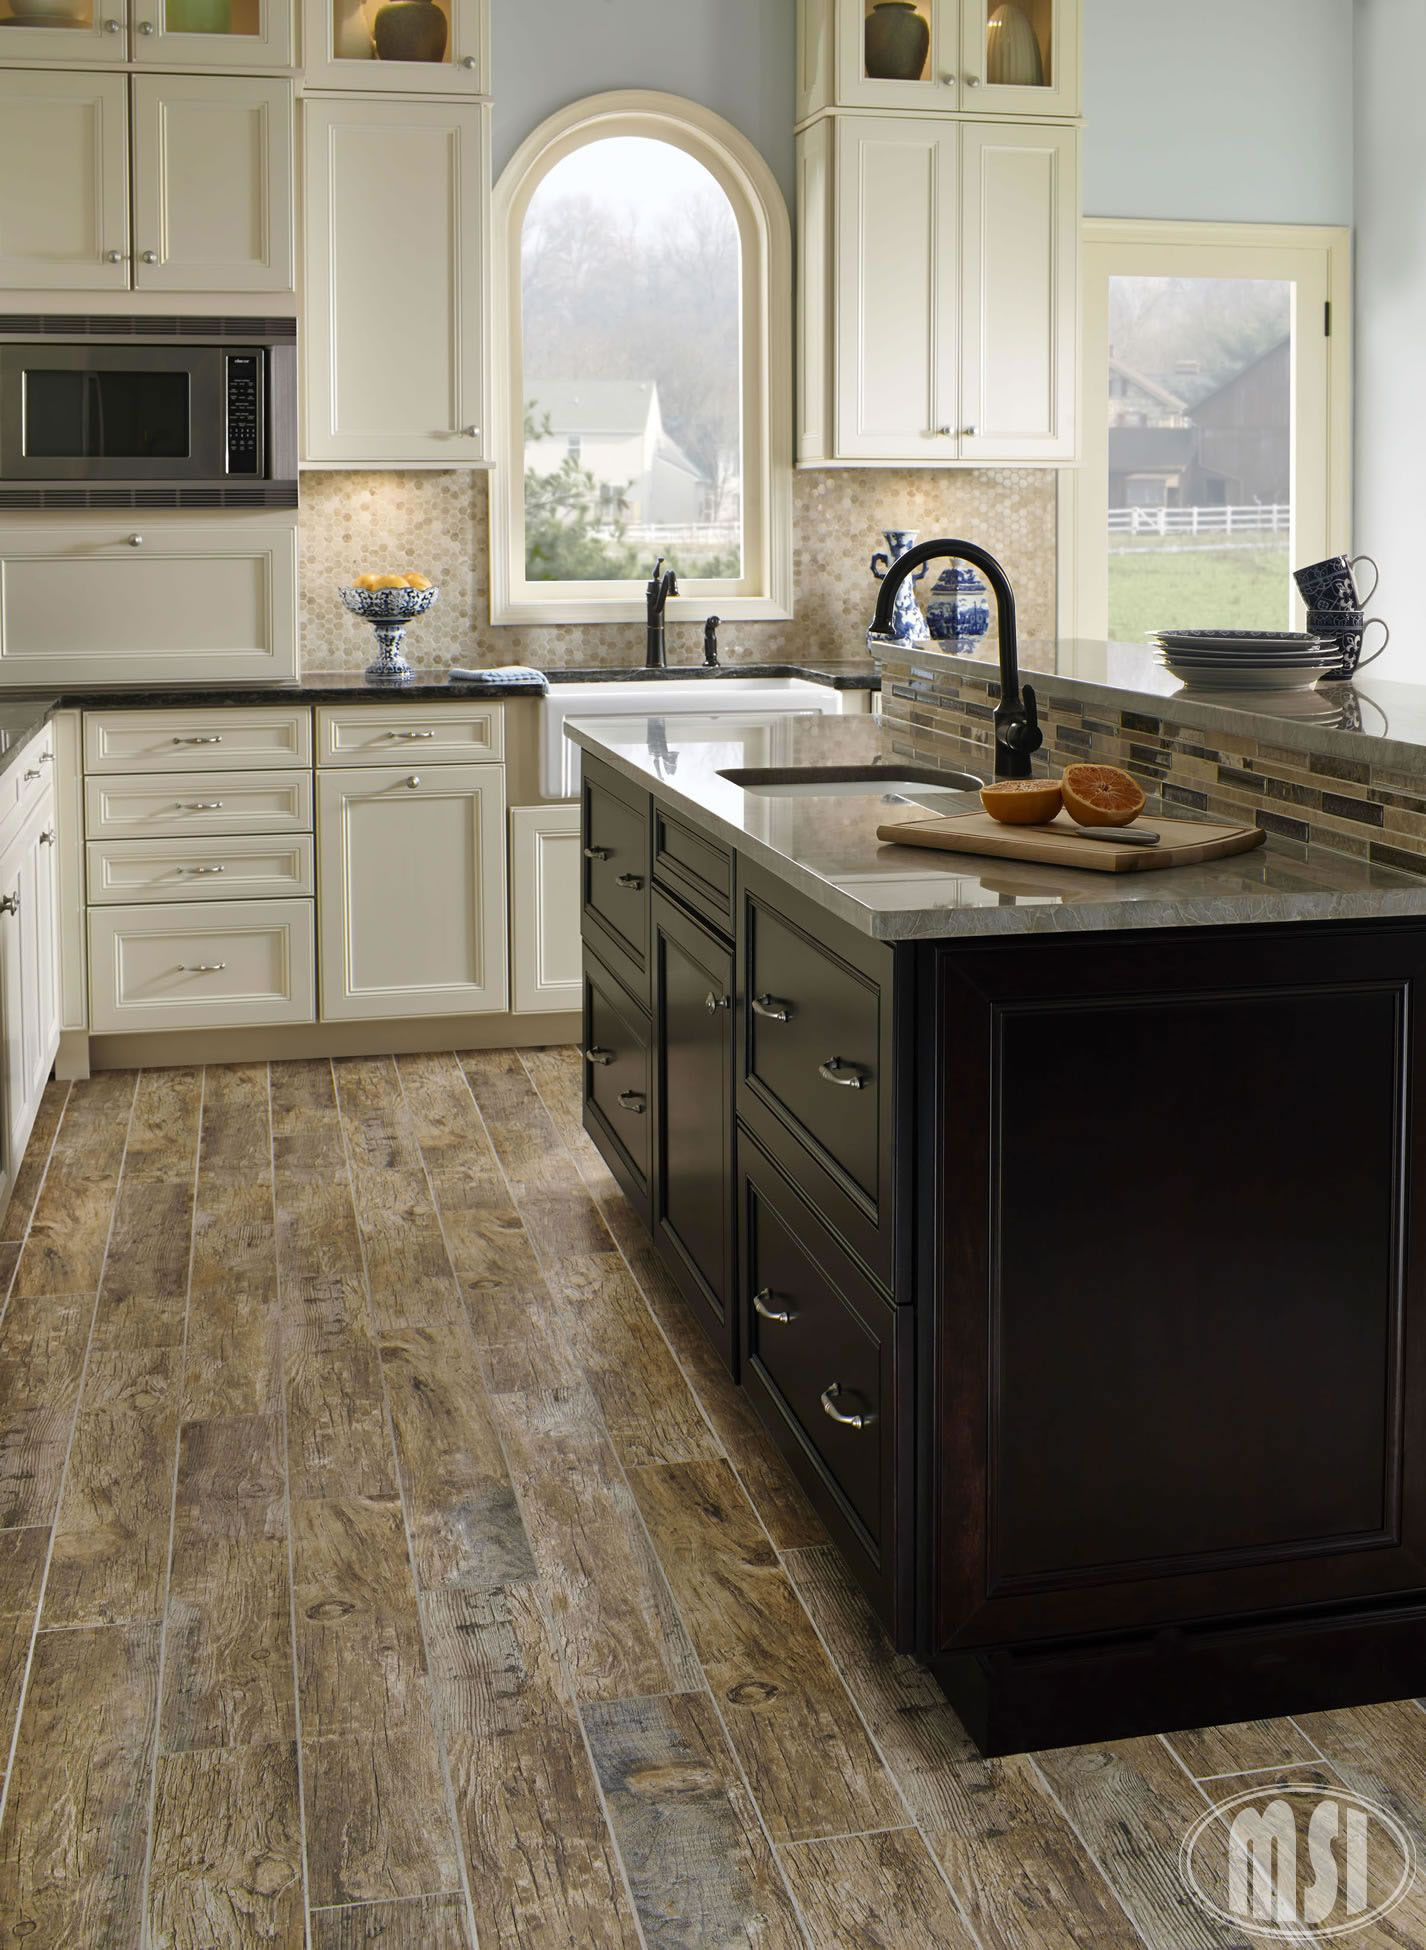 Ceramic Tiles For Kitchen Floor Perfect Kitchen Floor No Need To Worry About Real Wood Floors